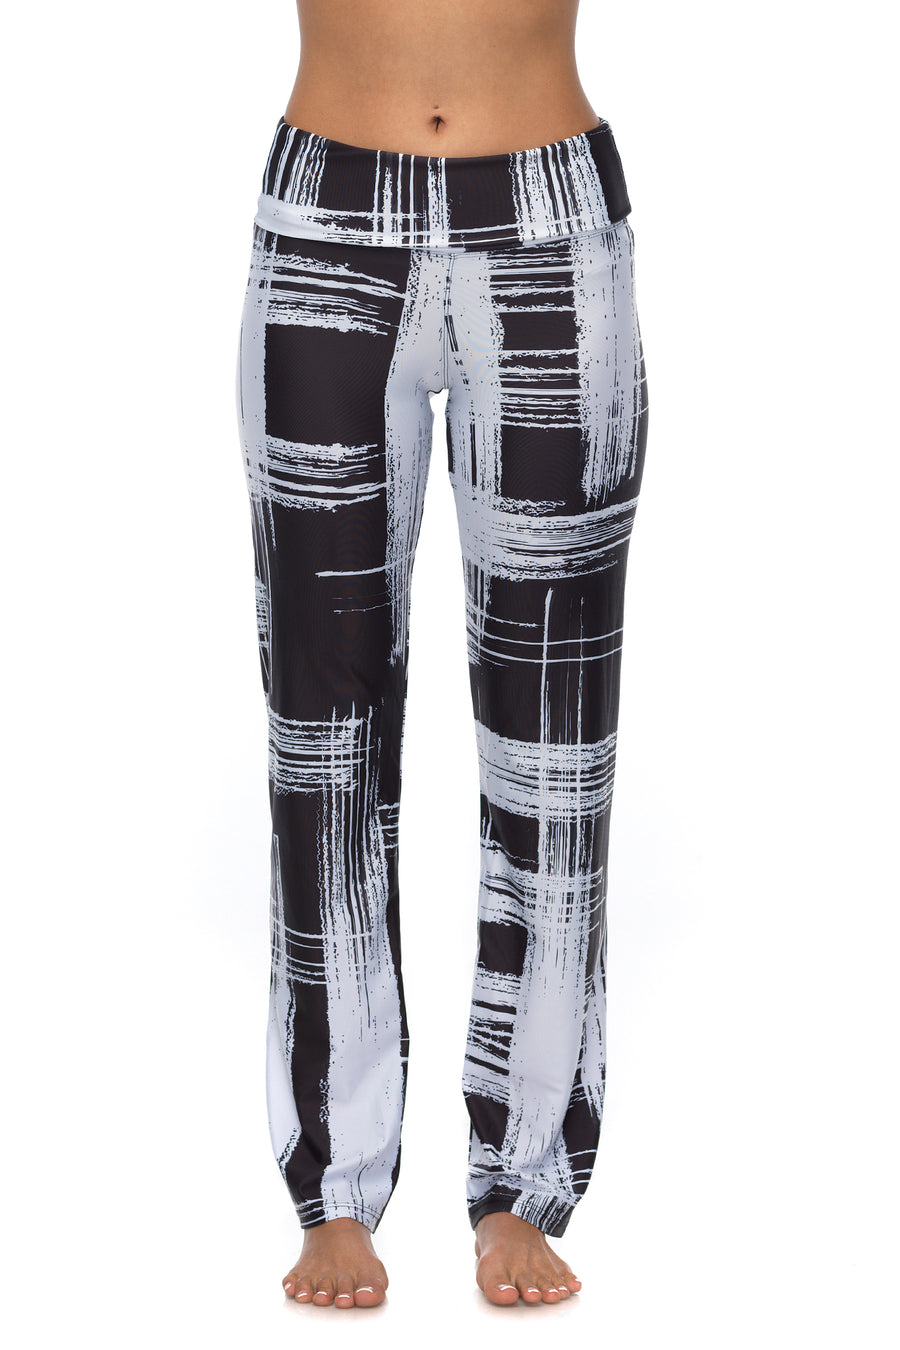 Kora Black & White Full Length Pant